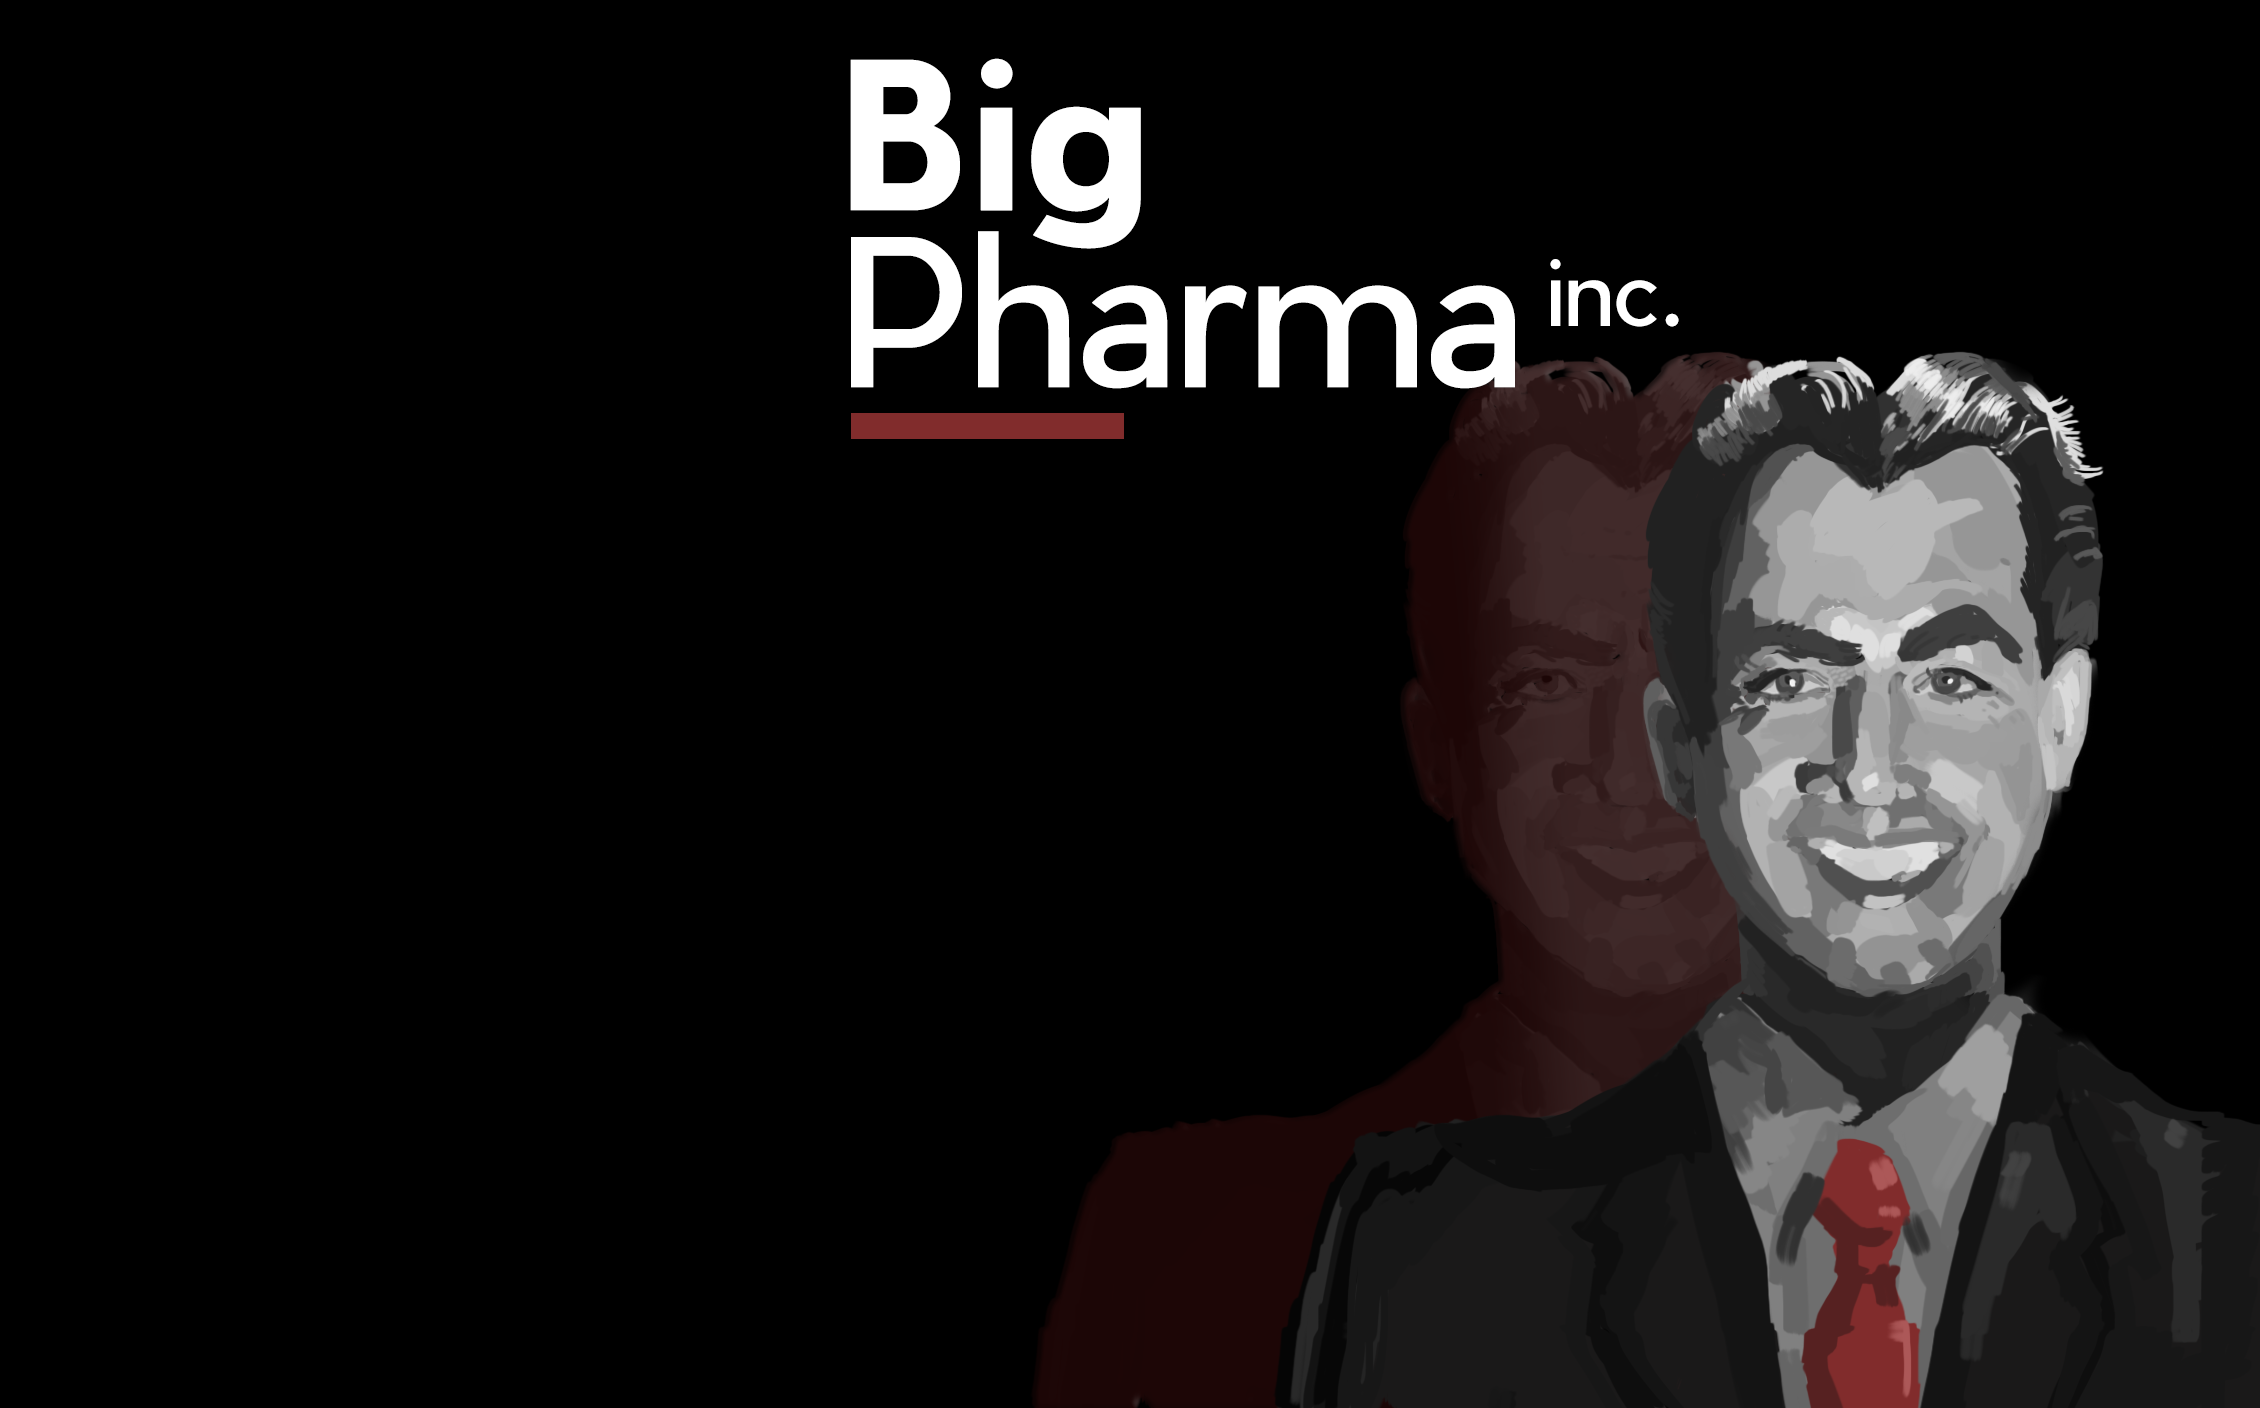 Big Pharma Inc.